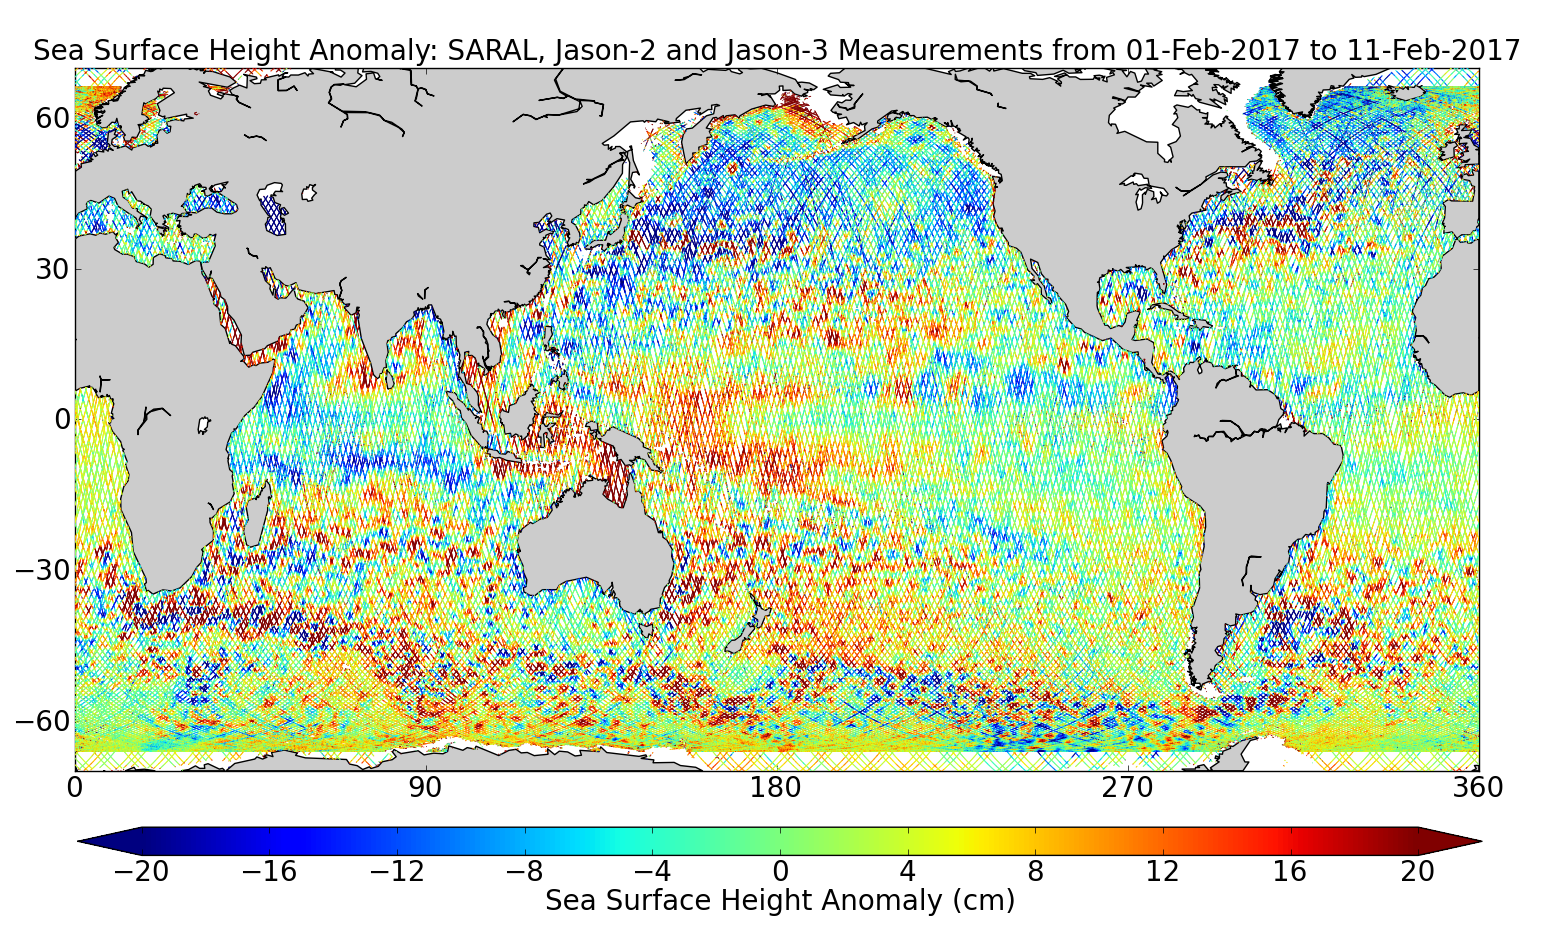 Sea Surface Height Anomaly: SARAL, Jason-2 and Jason-3 Measurements from 01-Feb-2017 to 11-Feb-2017